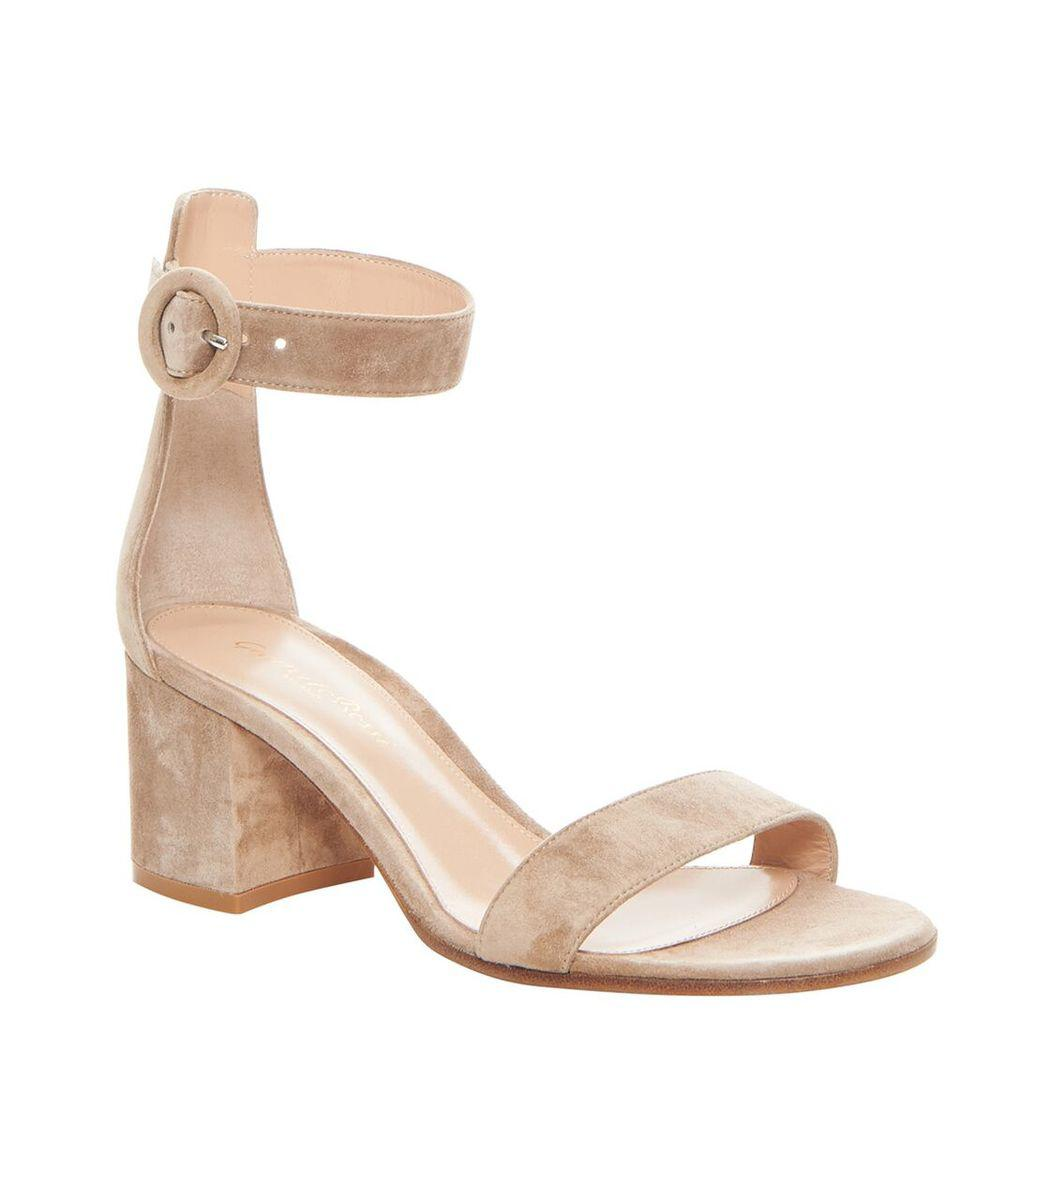 0c5e7fb762bd2 Gianvito Rossi - Natural Nude Suede Heeled Sandal - Lyst. View fullscreen